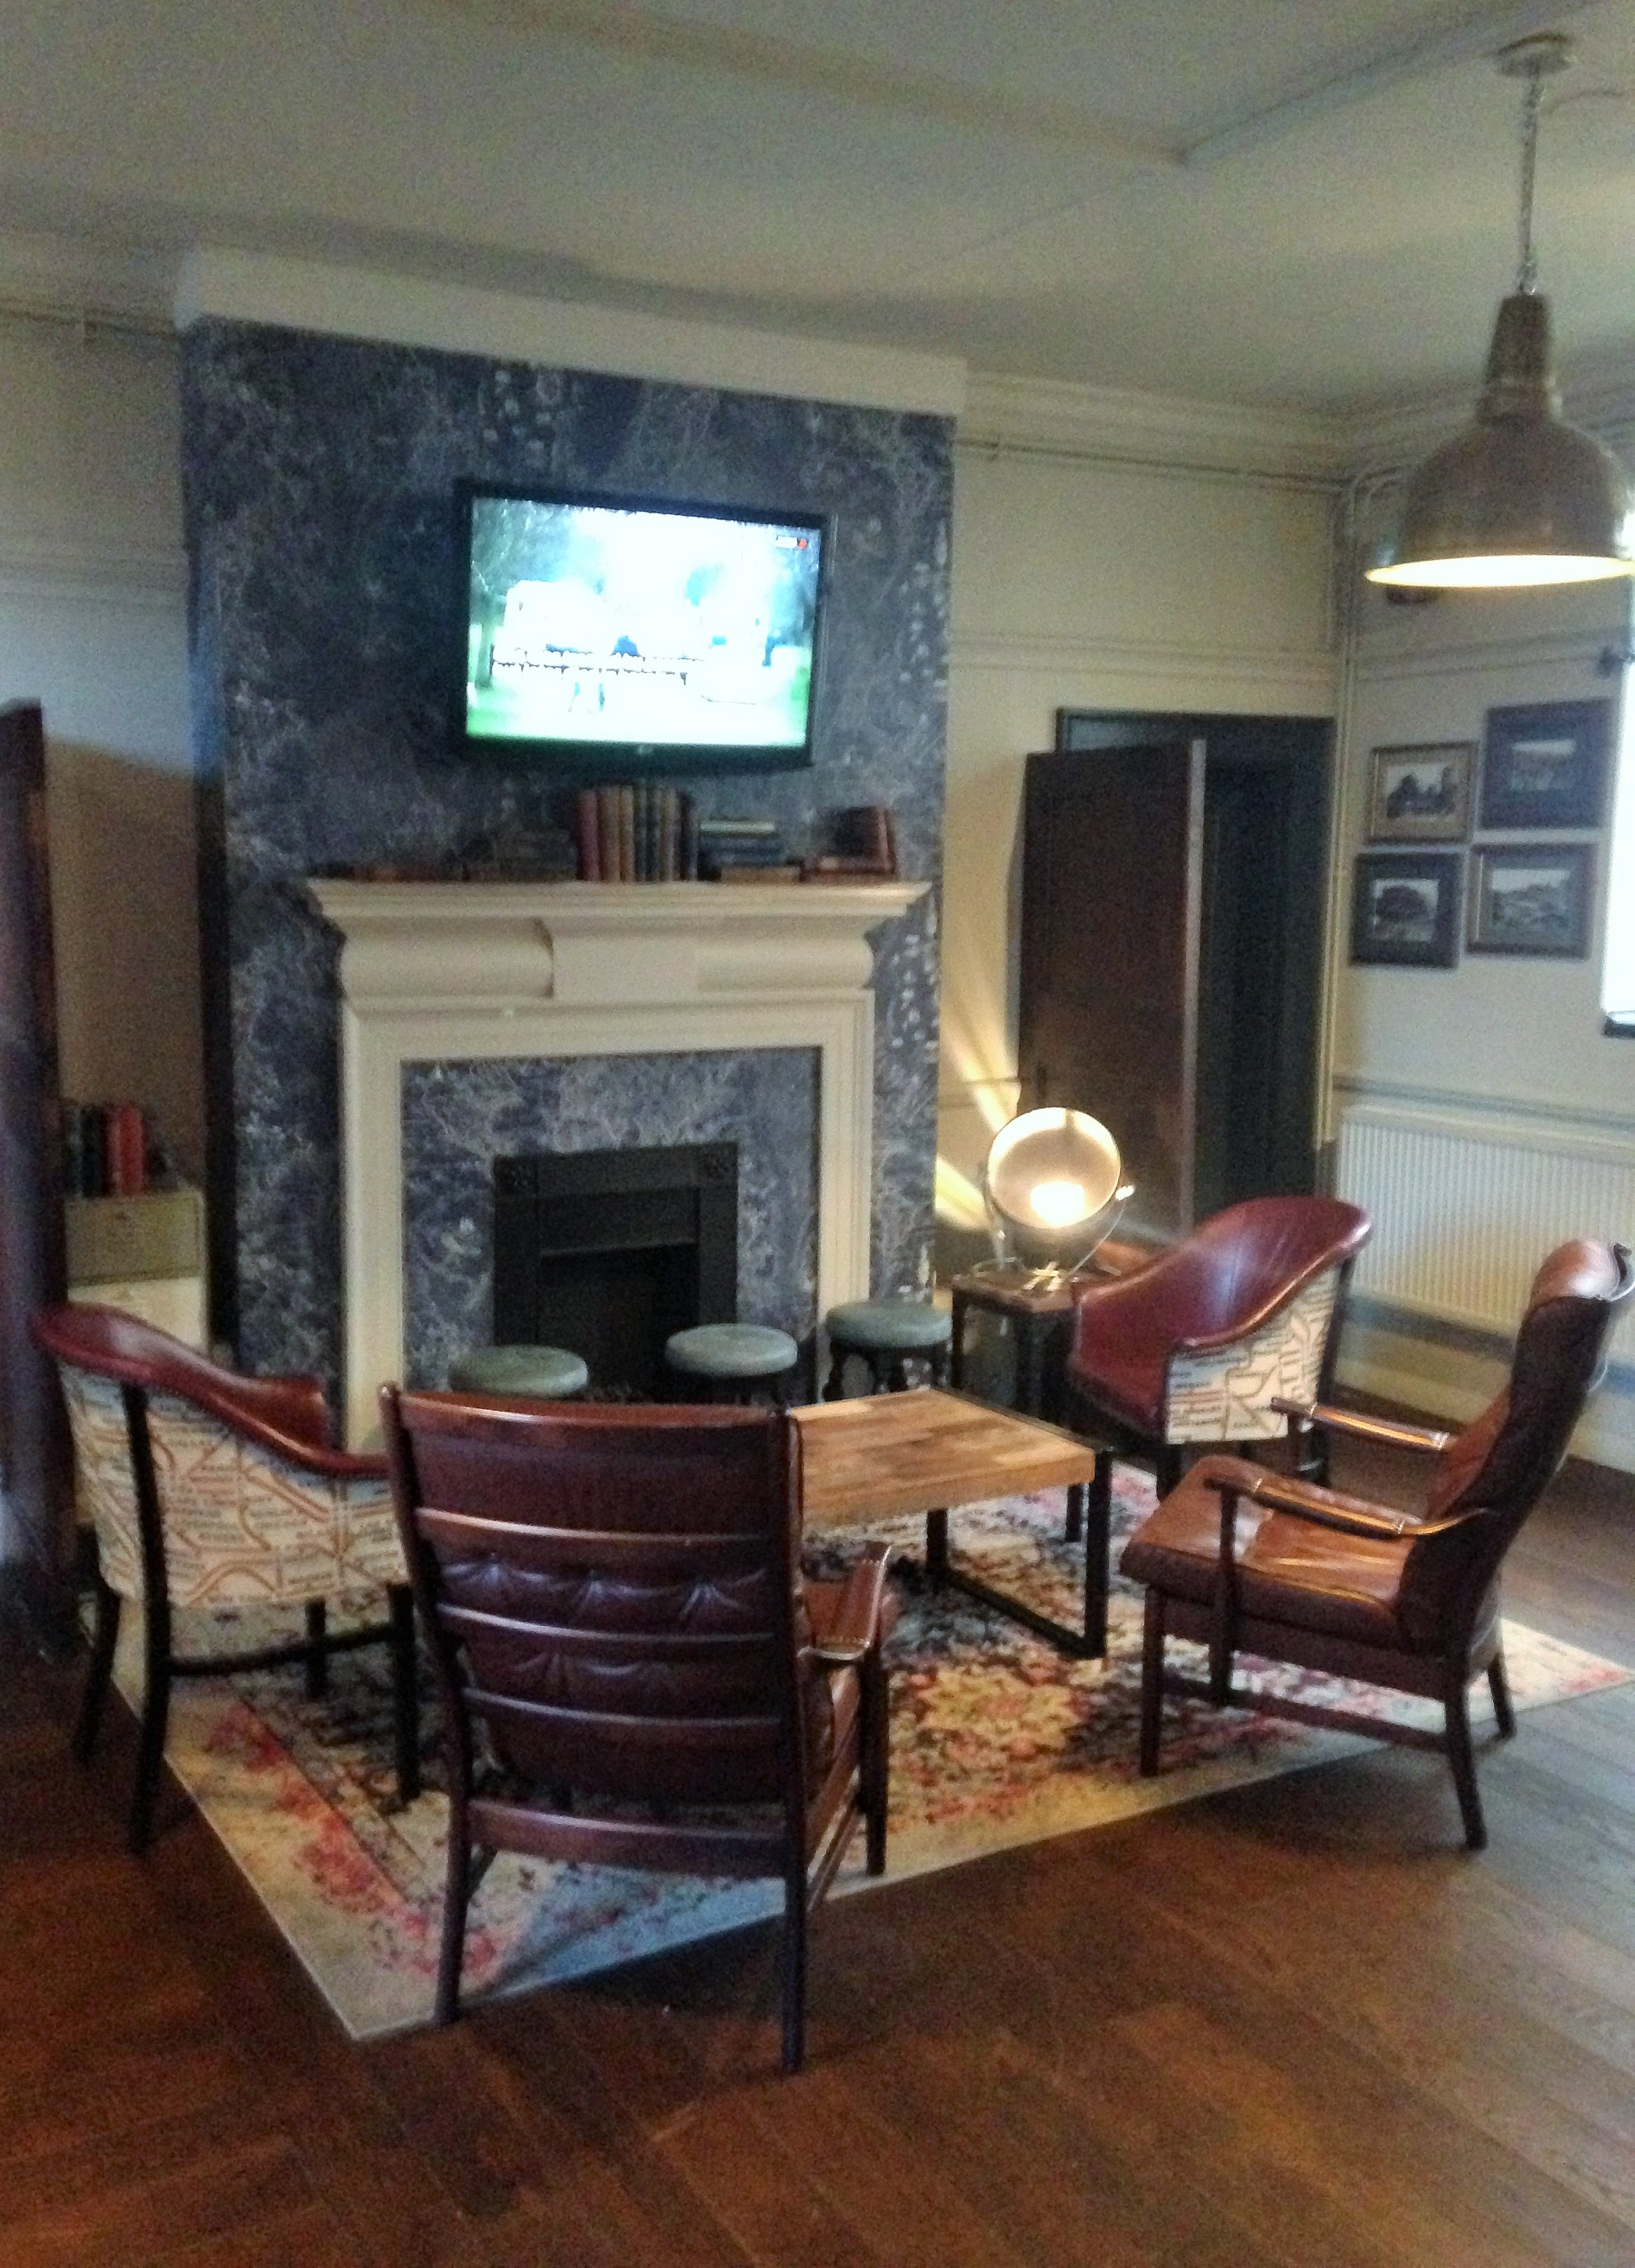 The Steam Engine living room - kenningtonrunoff.com